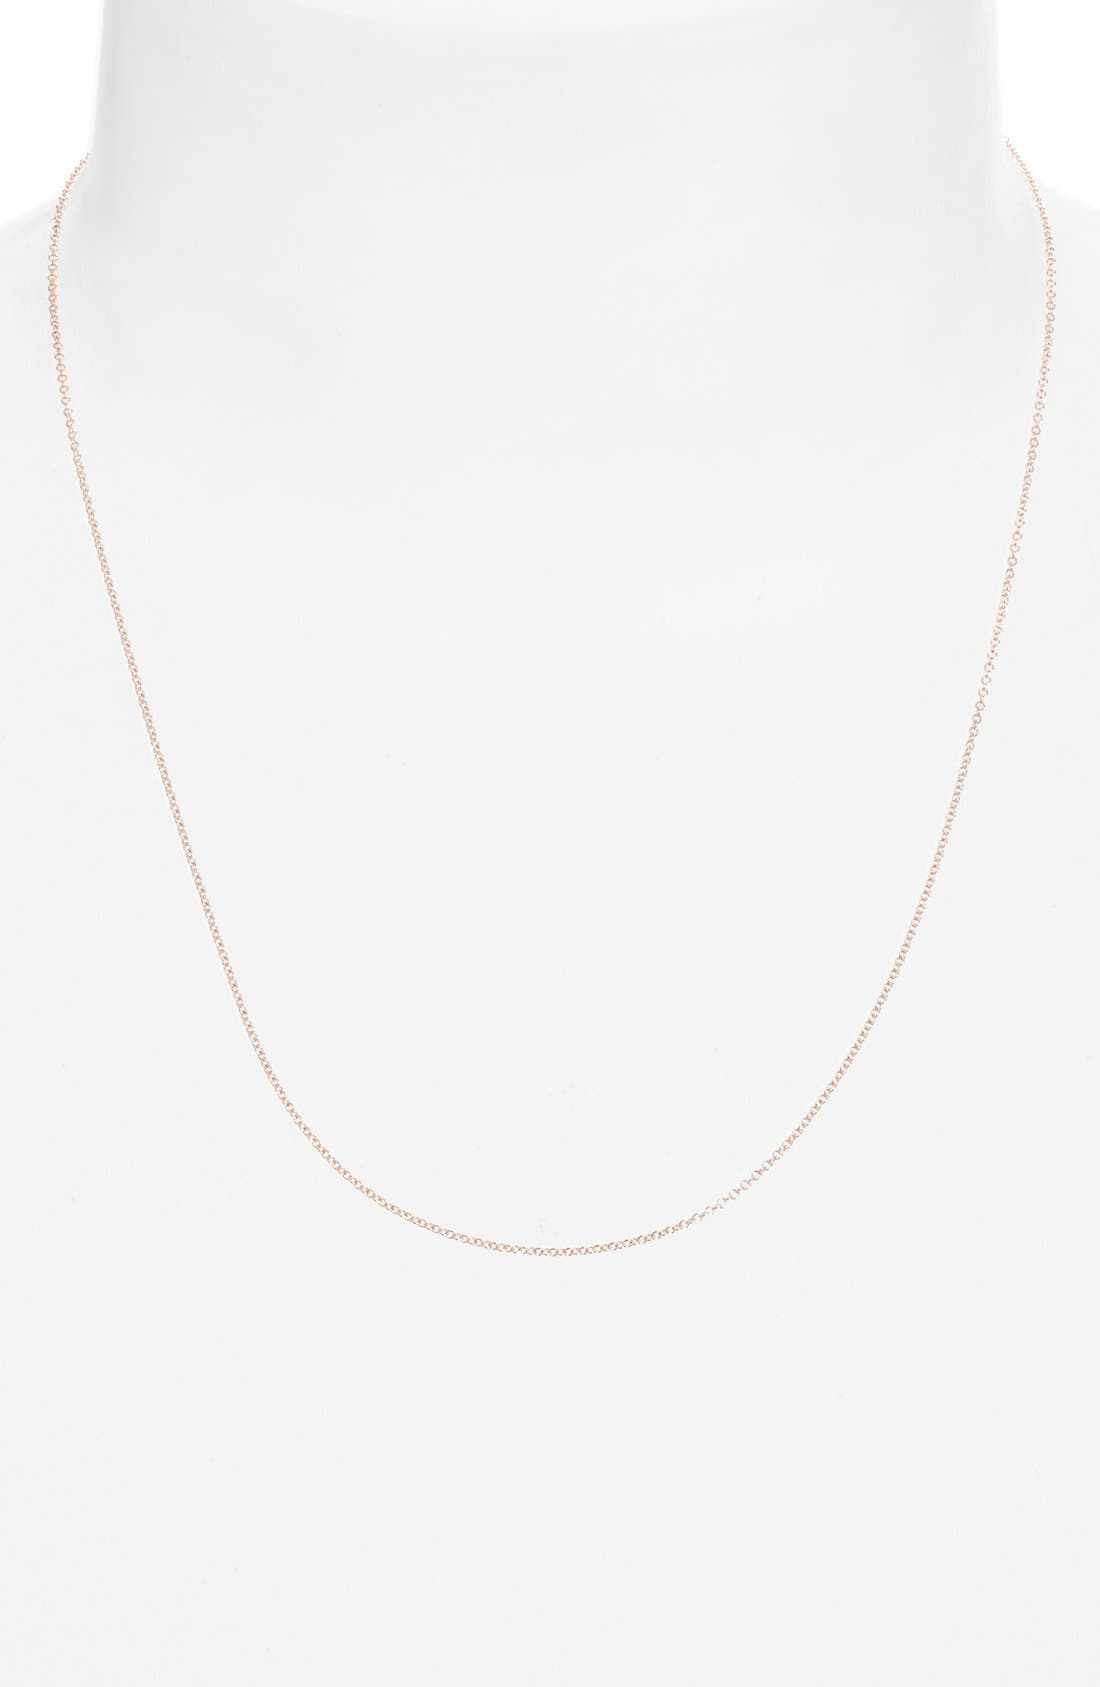 NASHELLE Chain Necklace